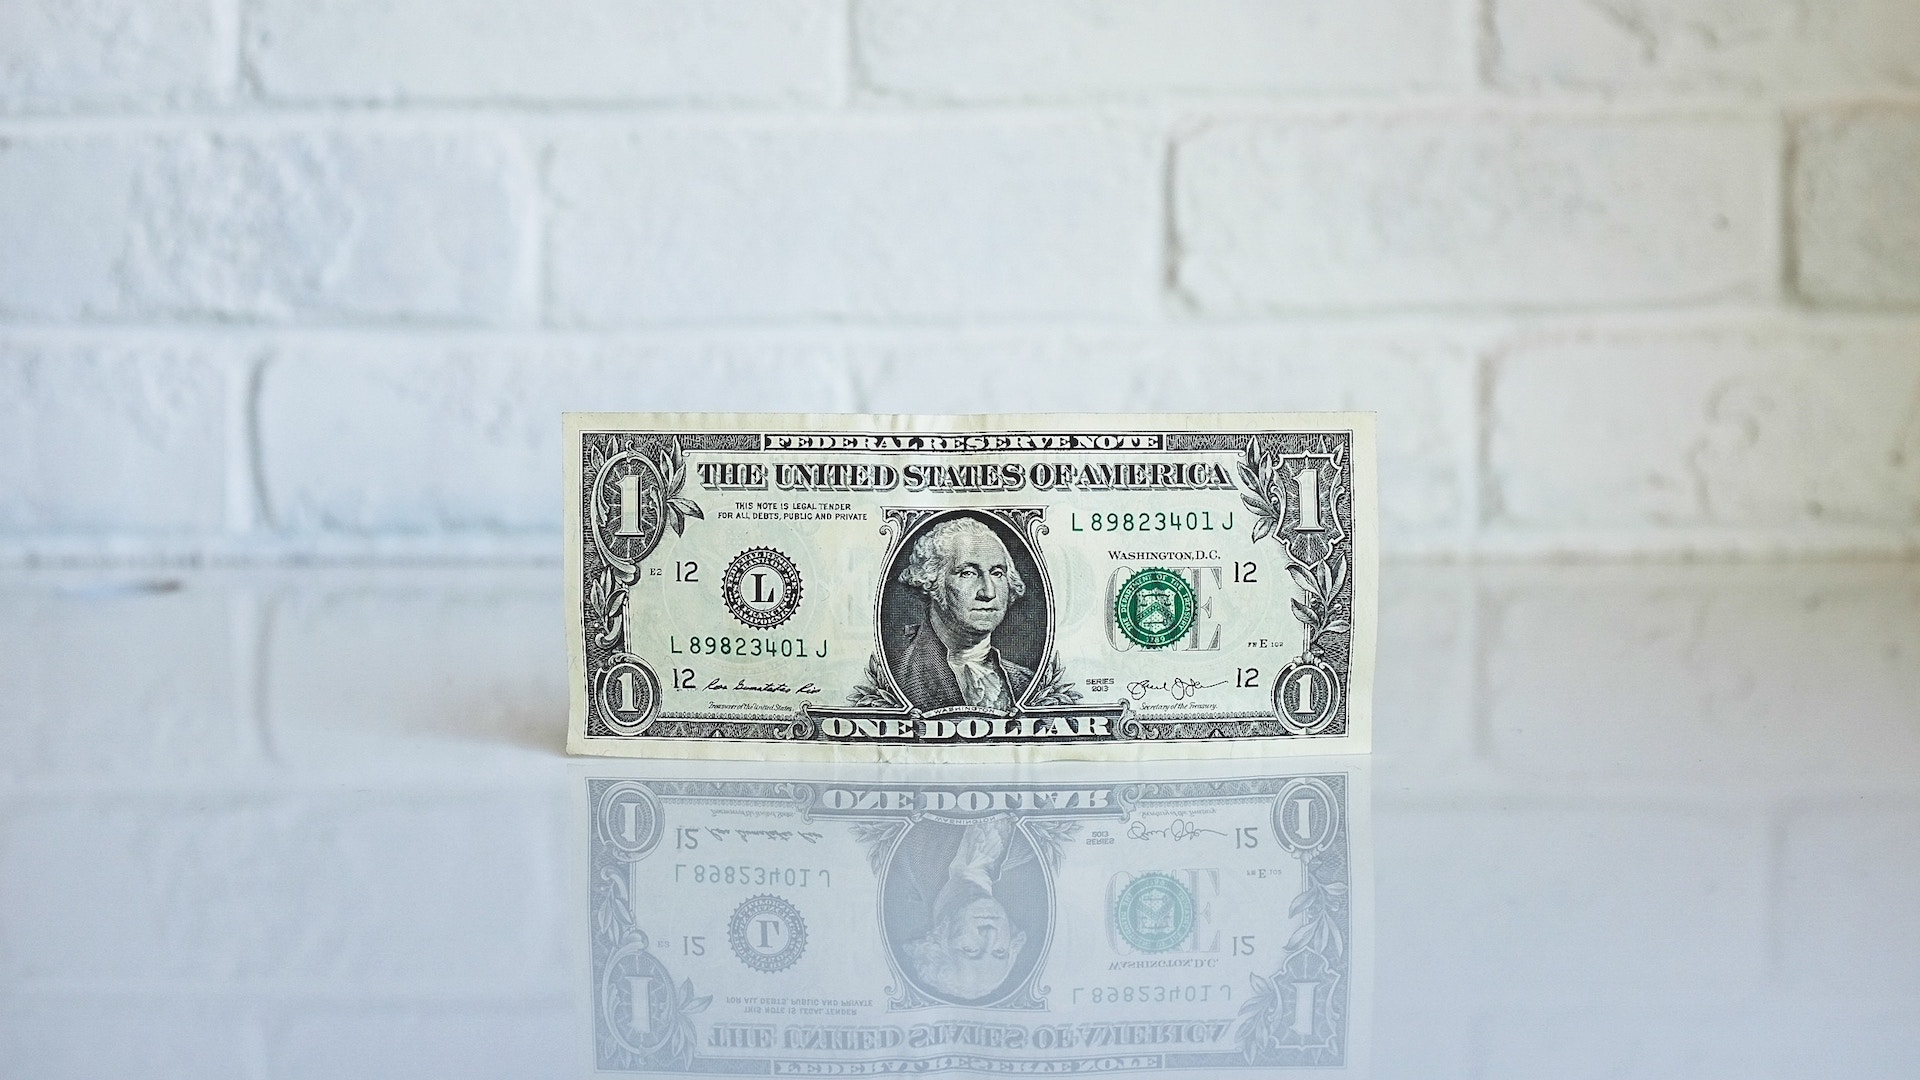 Lemod Plastic/Cosmetic Surgery Loyalty Platform